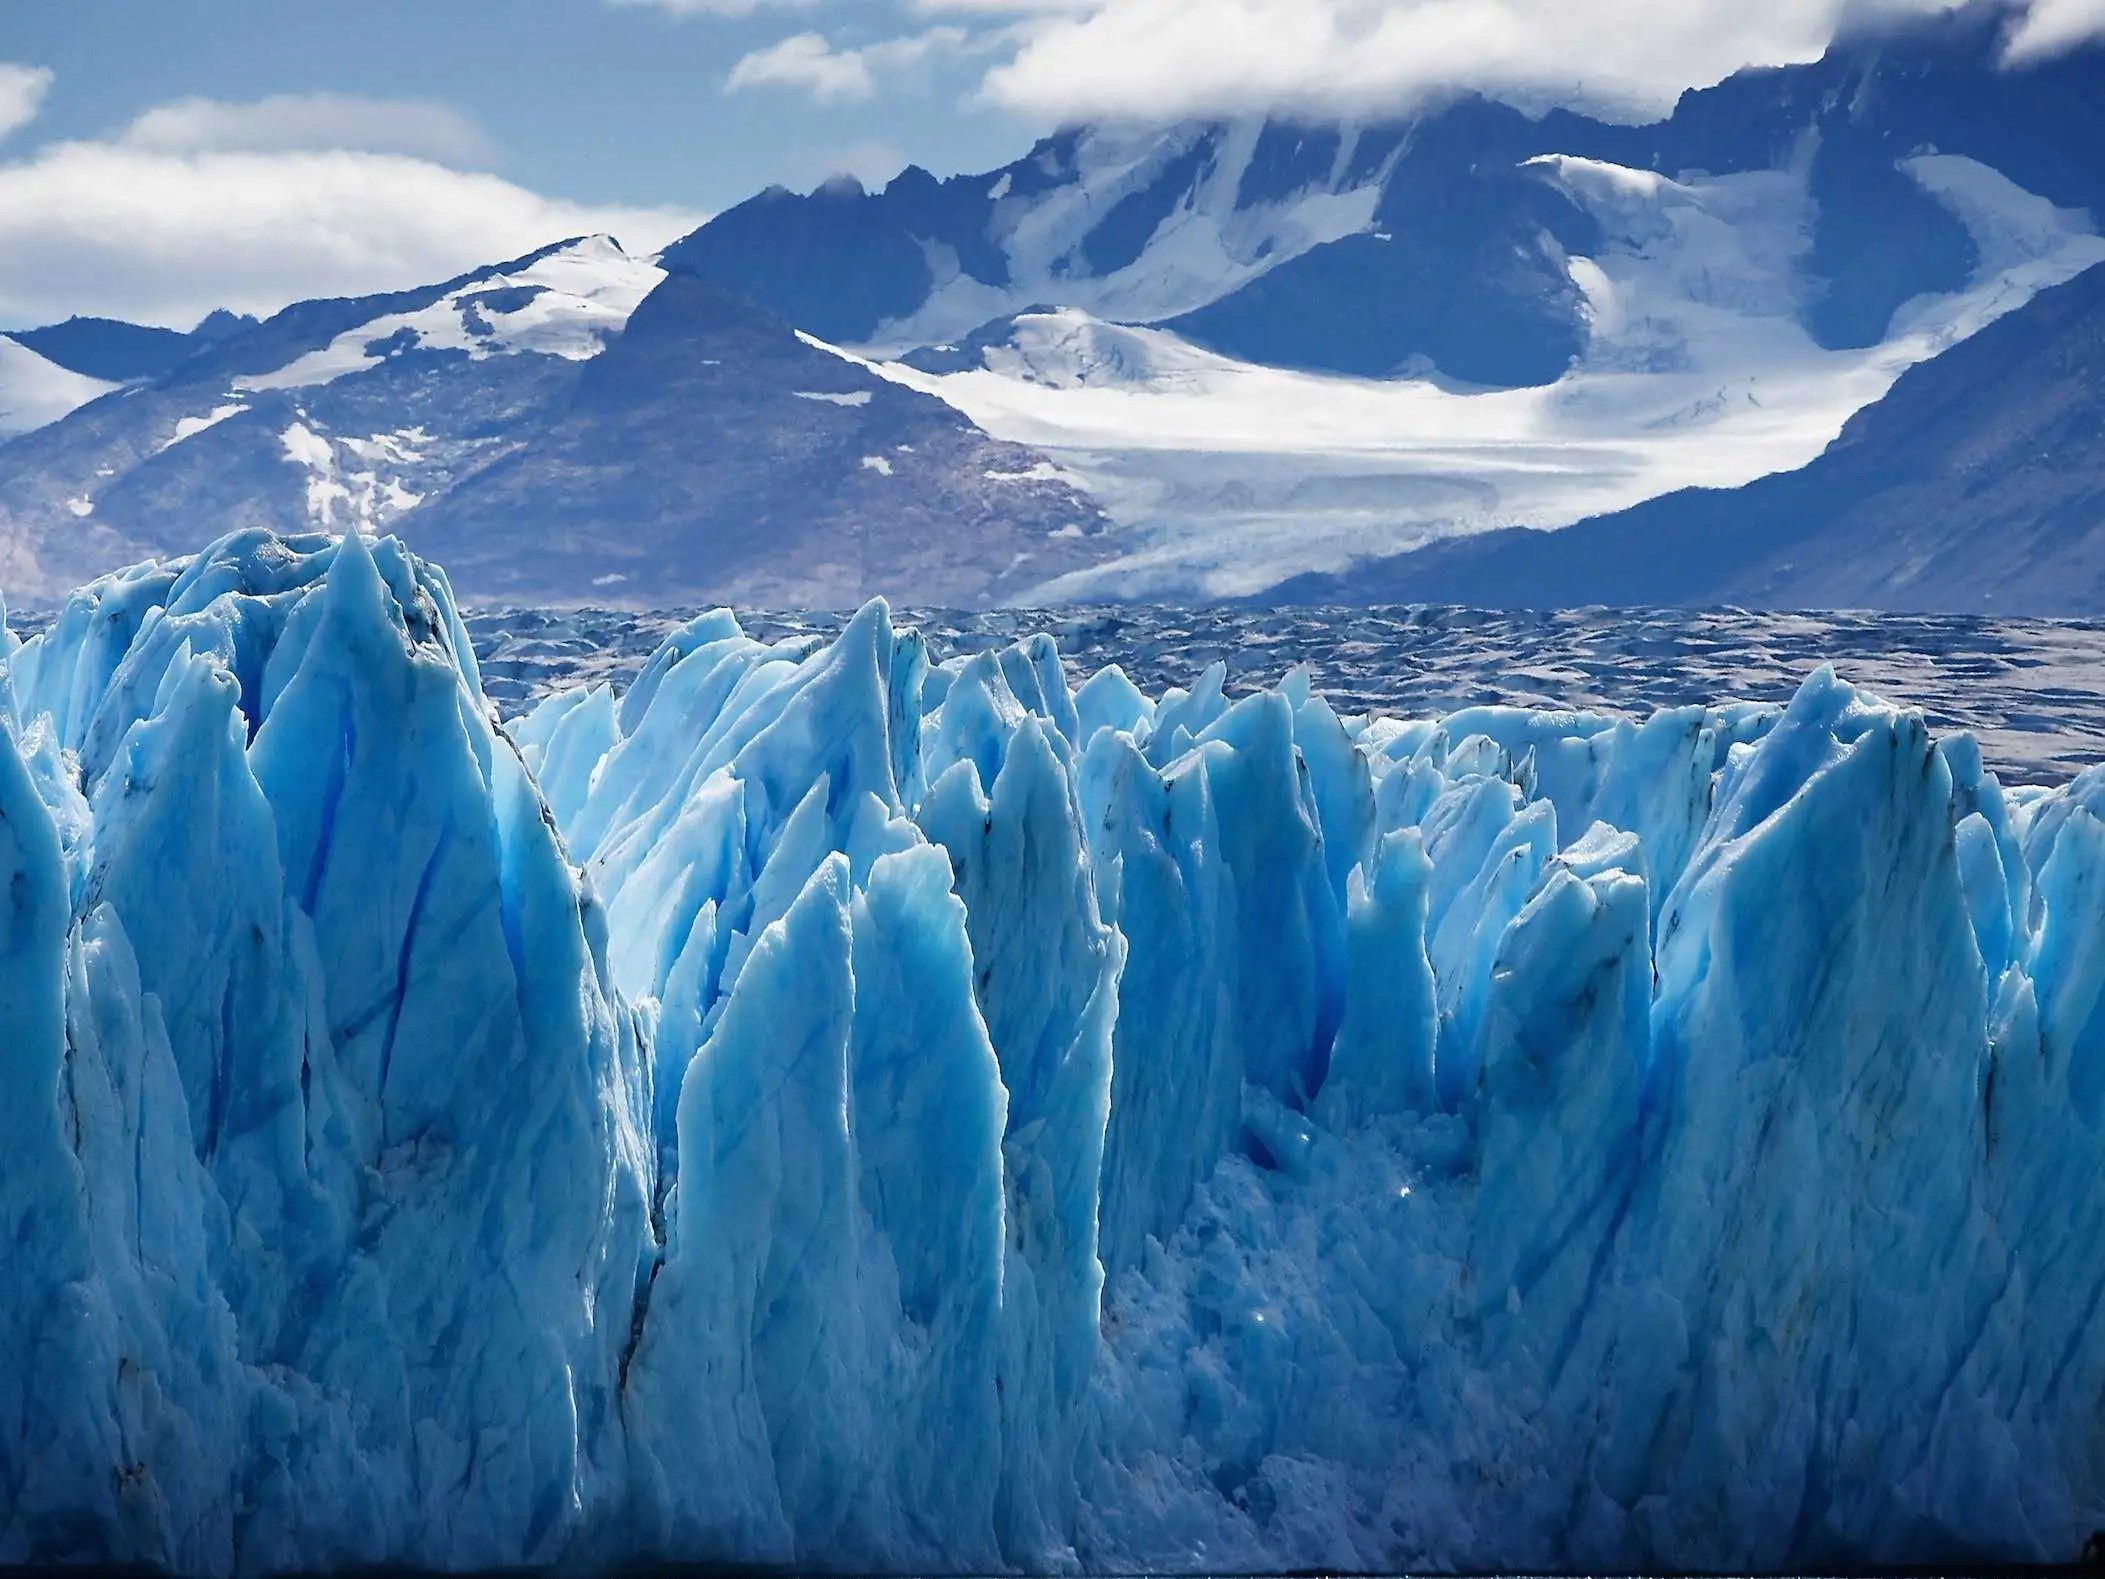 Marvel at the icy blue Upsala Glacier, a valley glacier in Argentina's Los Glaciares National Park in Patagonia.